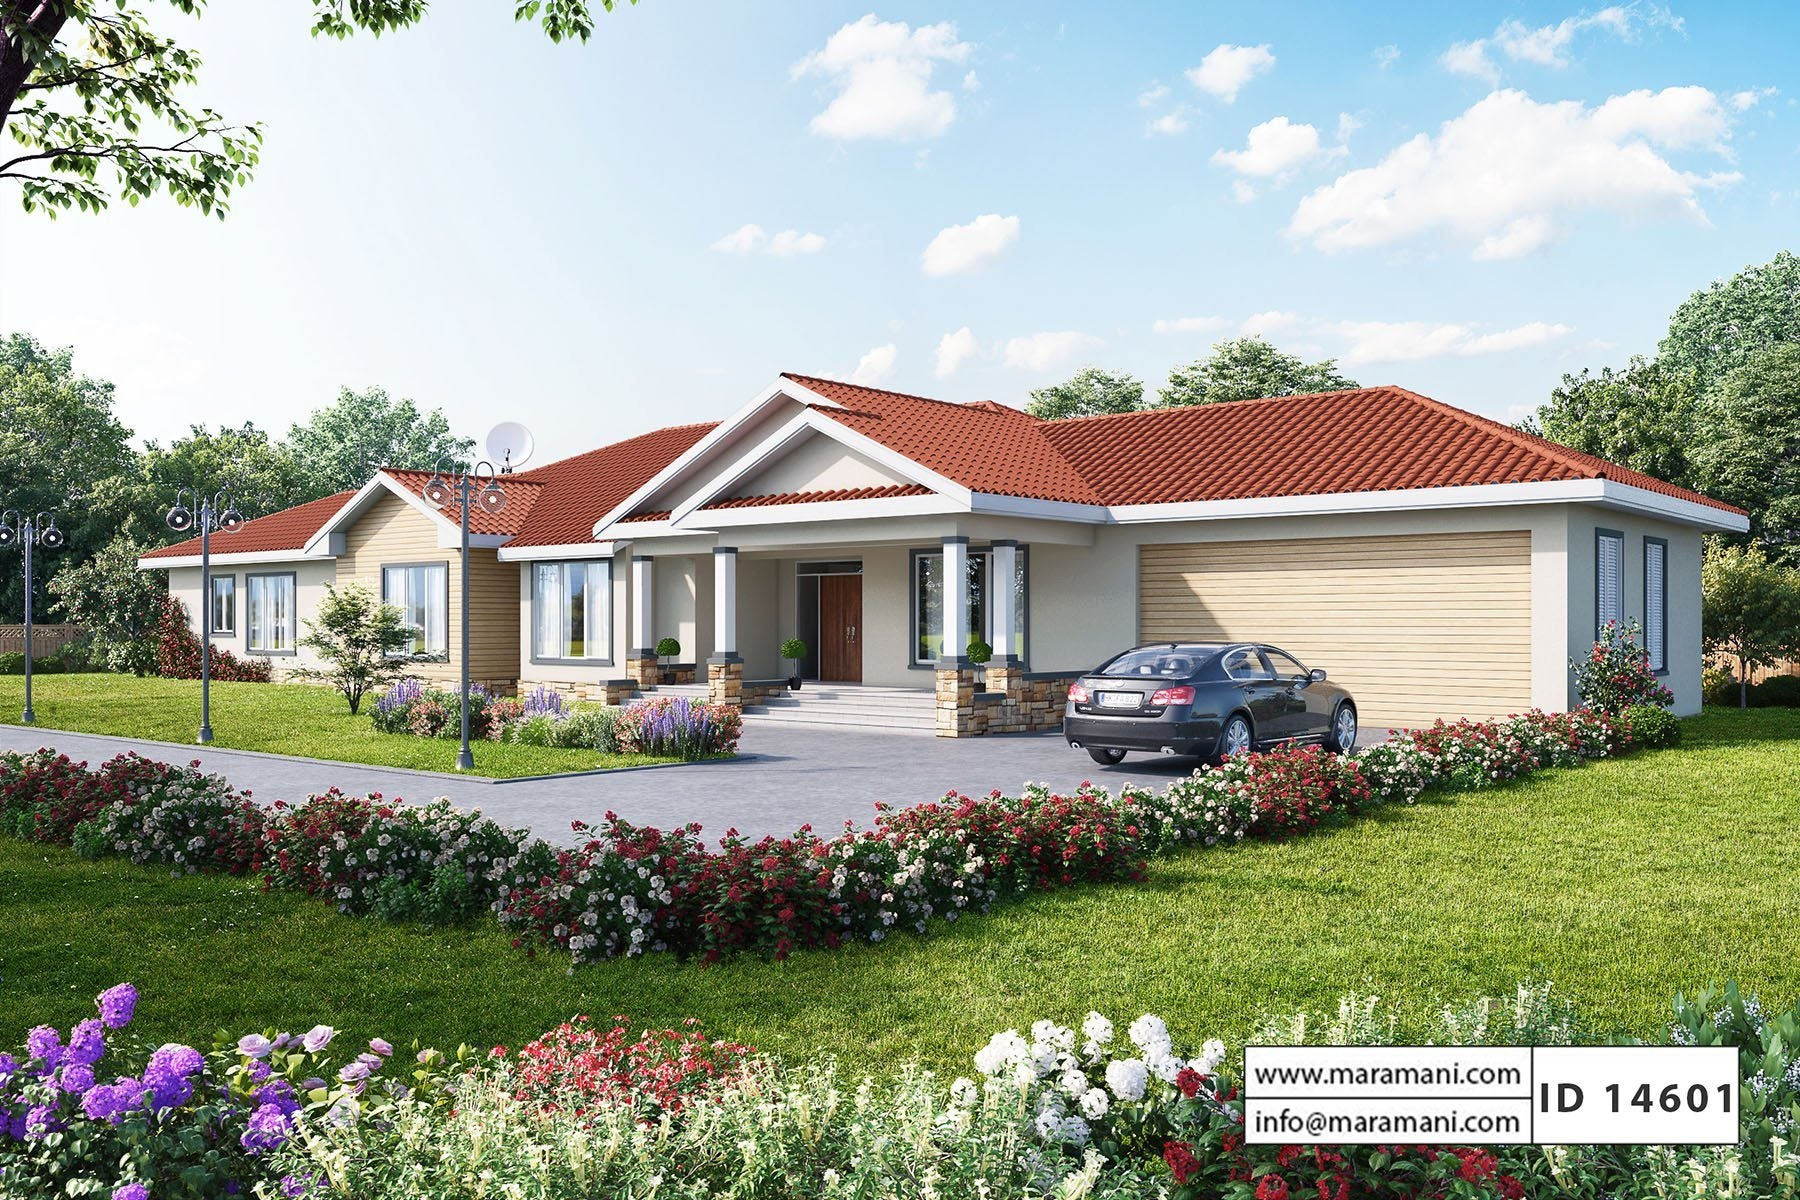 4 bedroom house plan one story